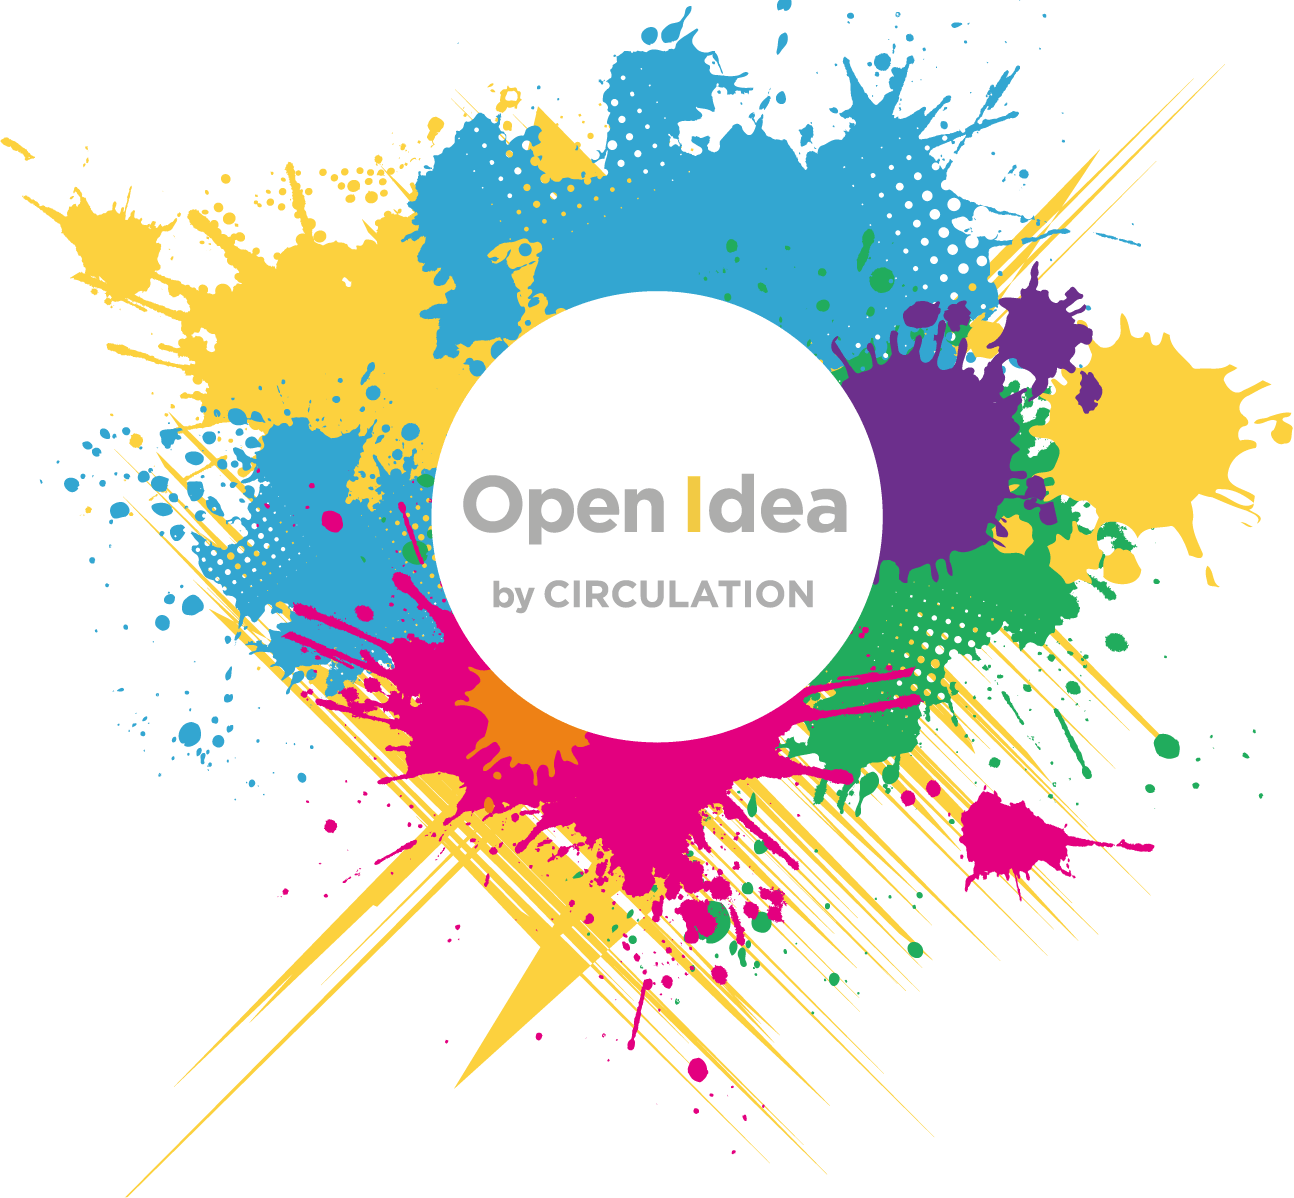 Open Idea by Circulation